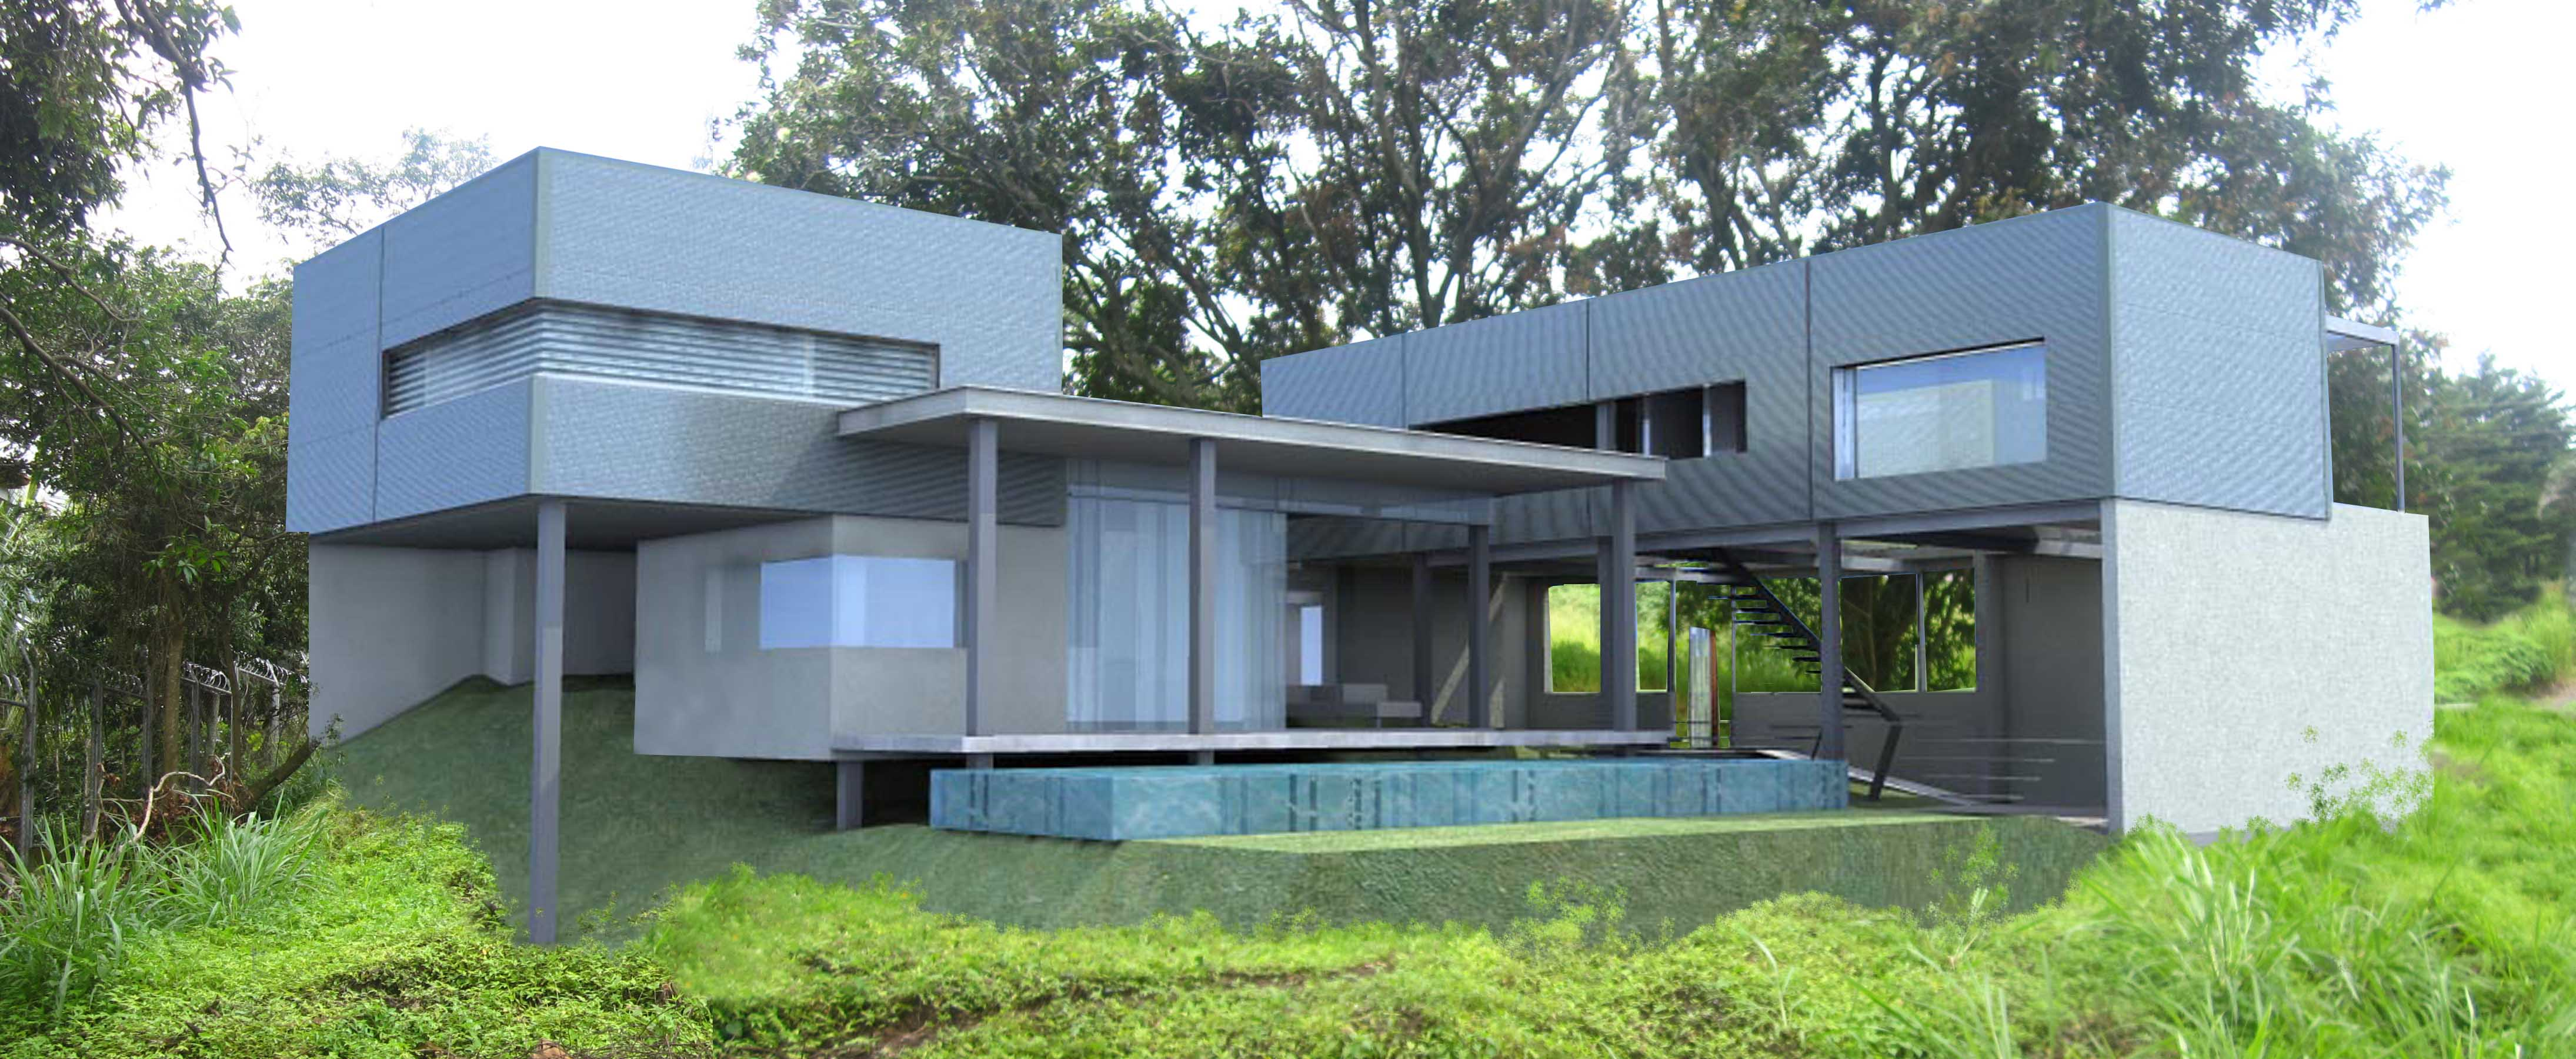 All About Steel Frame Building in Costa Rica | Dott Architecture ...